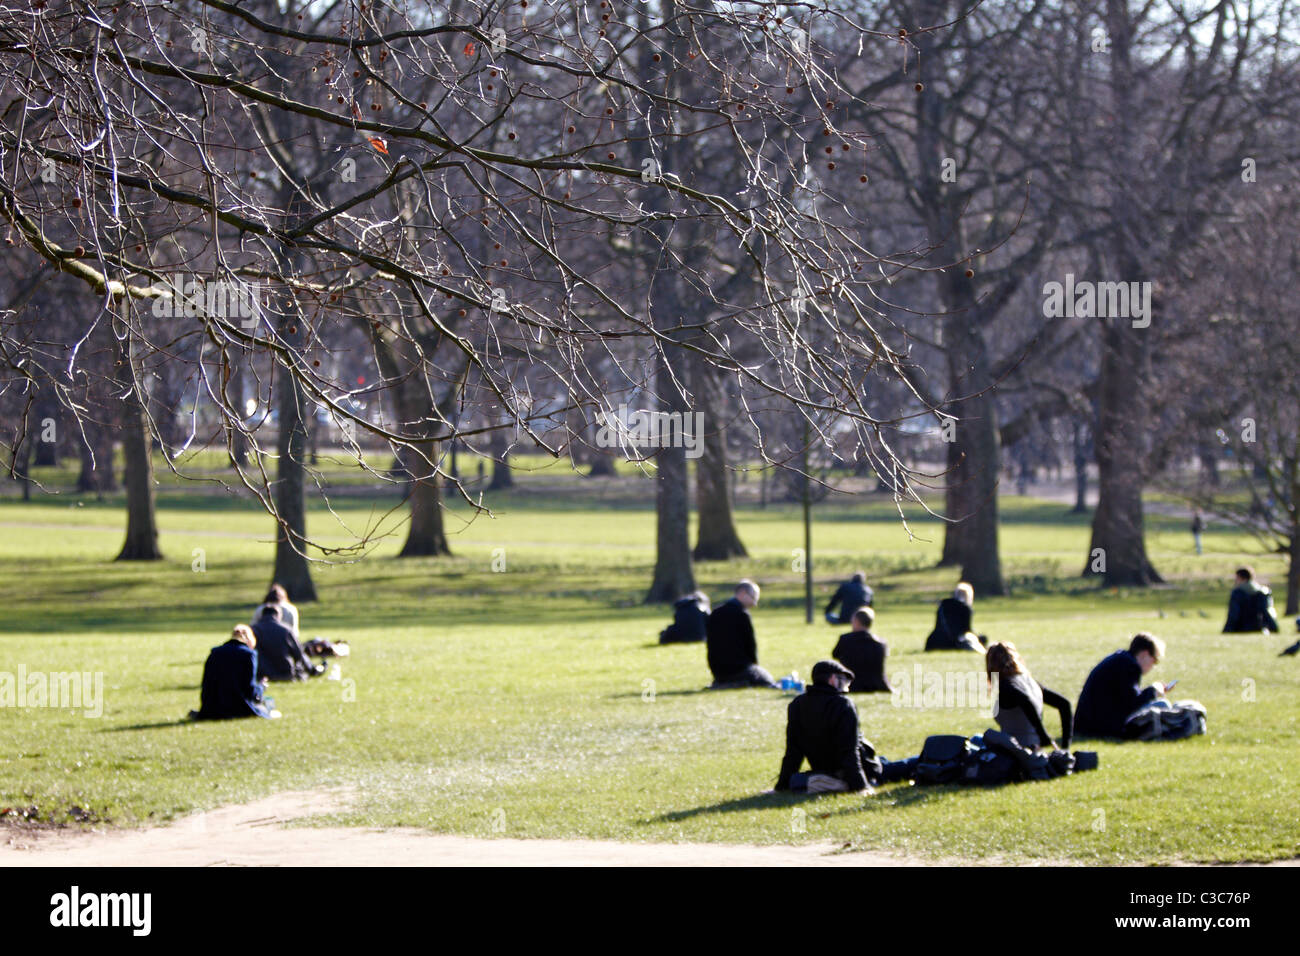 People relax in Green Park London during unseasonal warm February weather - Stock Image